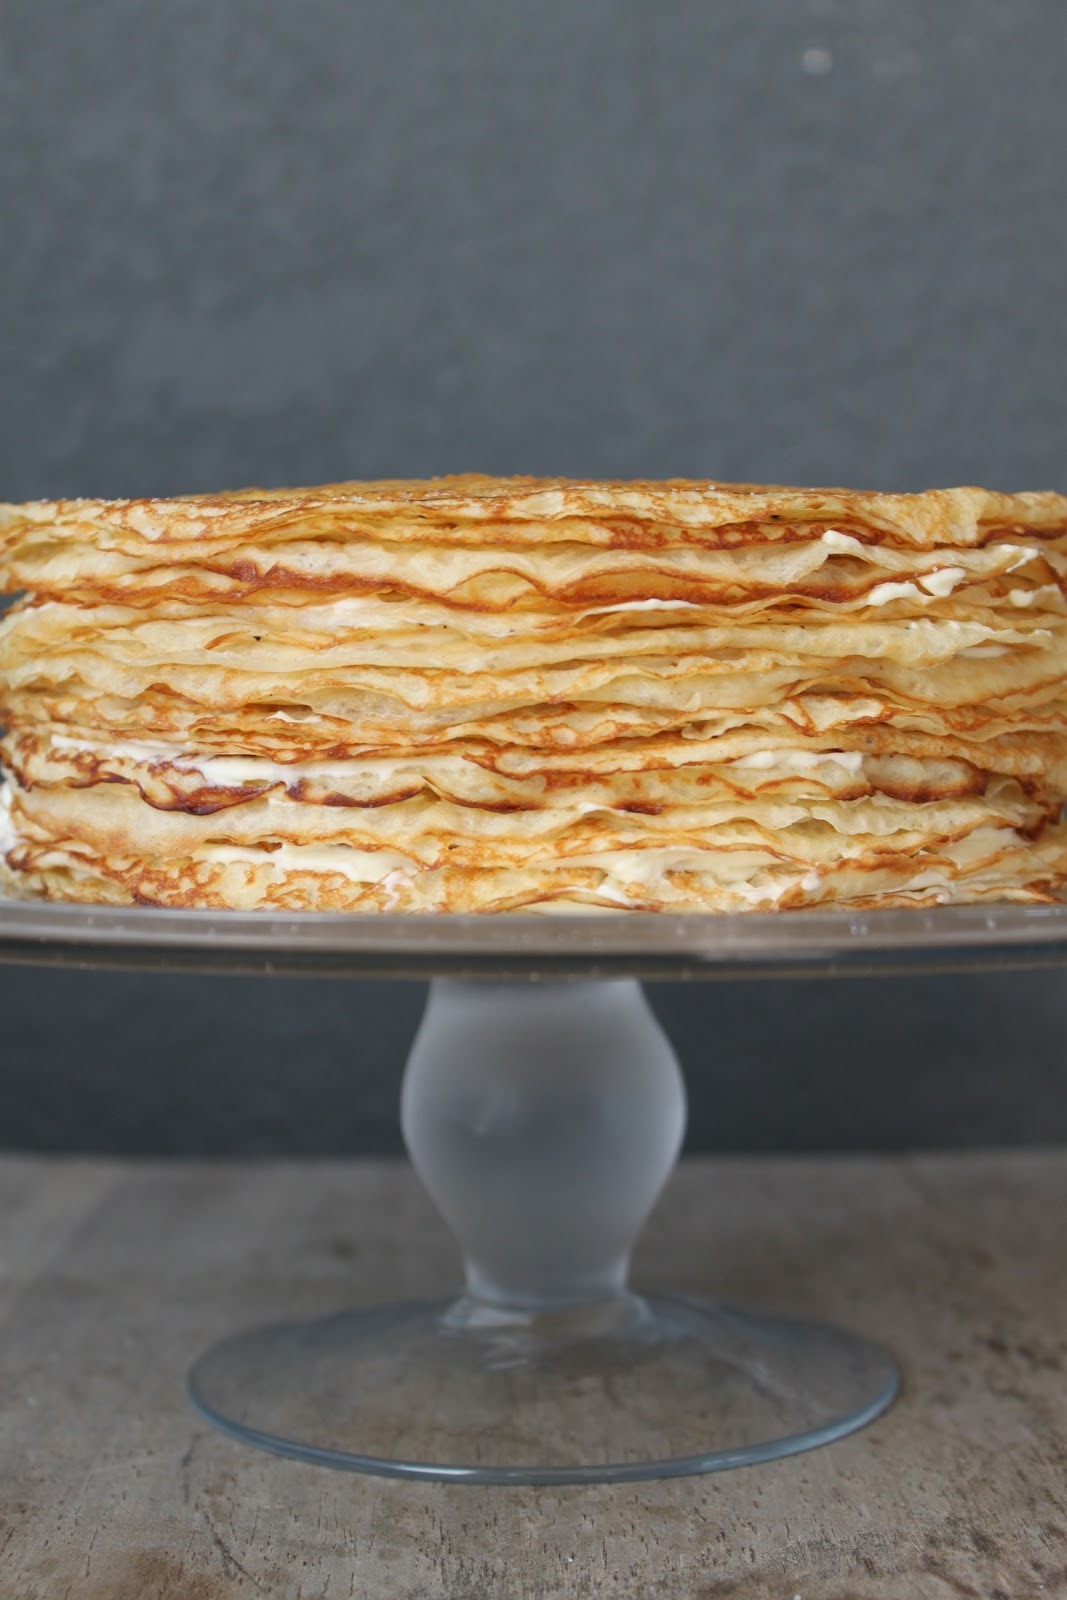 Gâteau de Crêpes (Crepe Cake) - The Little Epicurean